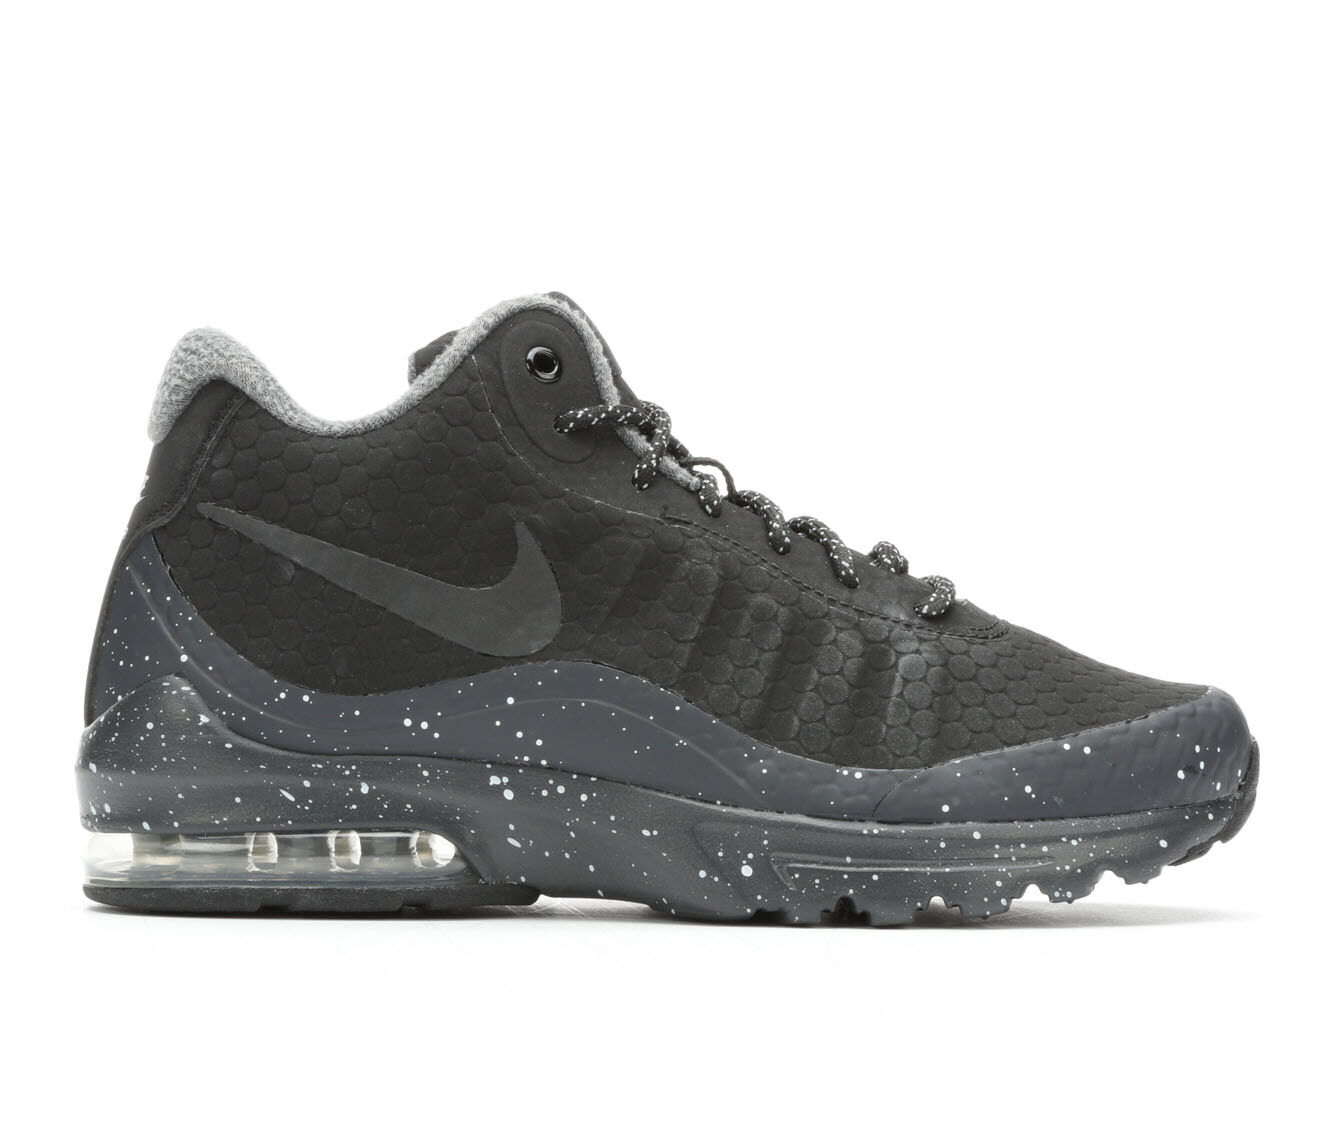 buy cheap factory outlet cheap sale with credit card Women's Nike Air Max Invigor Mid High Top Athletic Sneakers discount codes clearance store i5JRYQvA8n